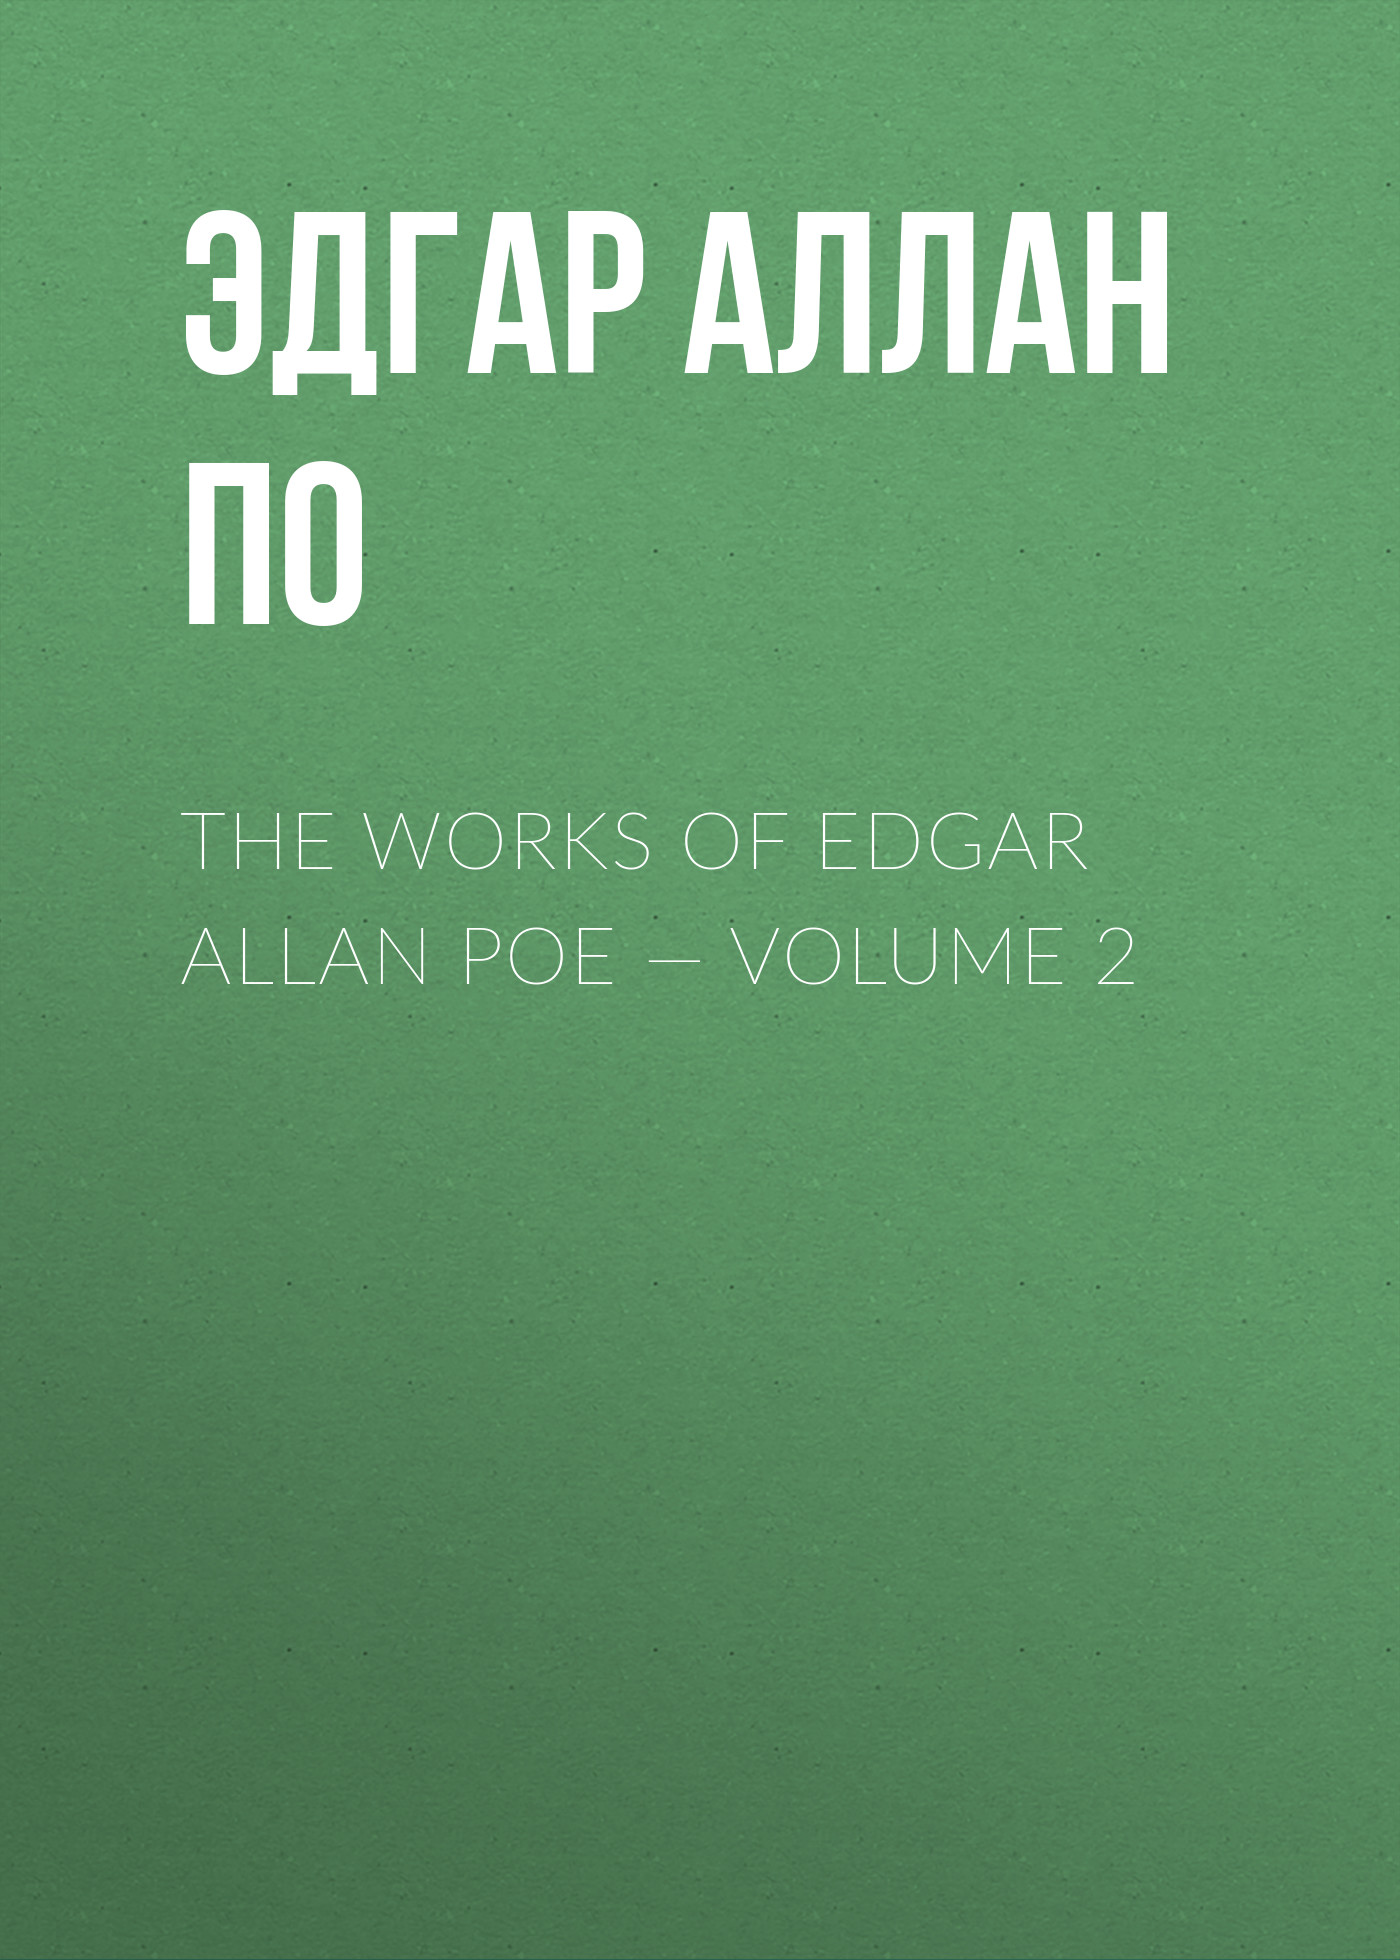 Эдгар Аллан По The Works of Edgar Allan Poe — Volume 2 эдгар аллан по the fall of the house of usher